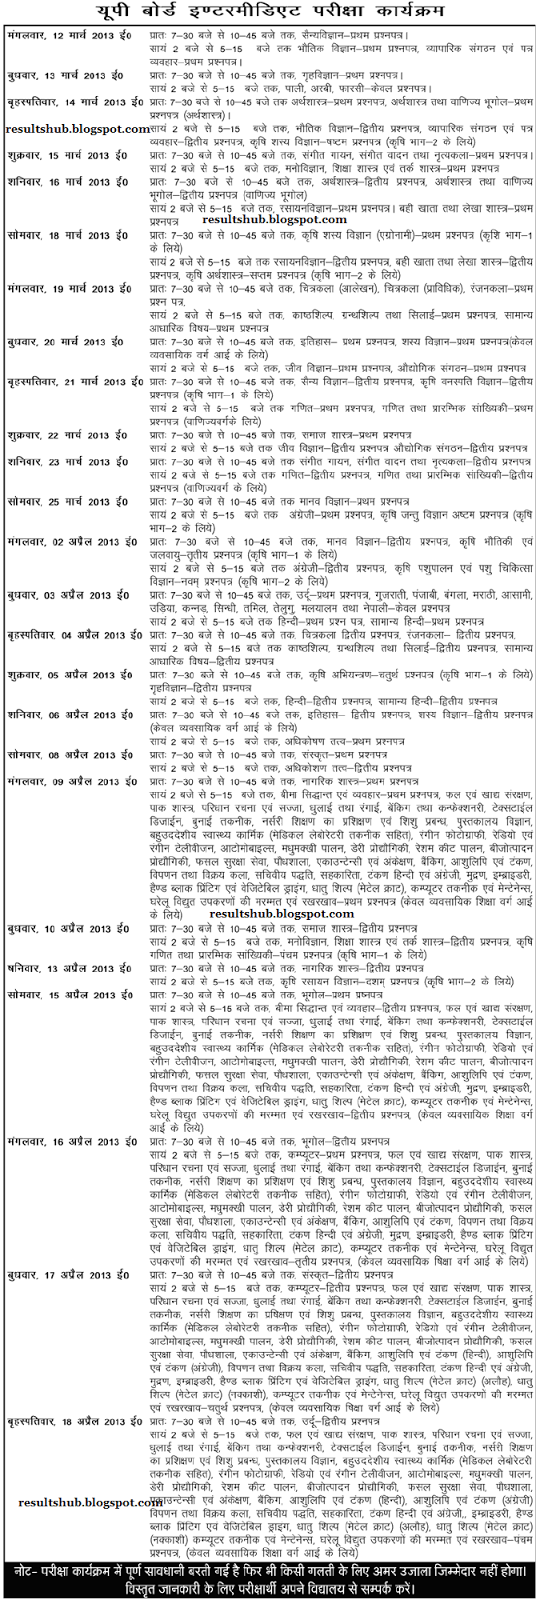 UP Board Date Sheet 2013 10th and 12th Exam Timetable Download